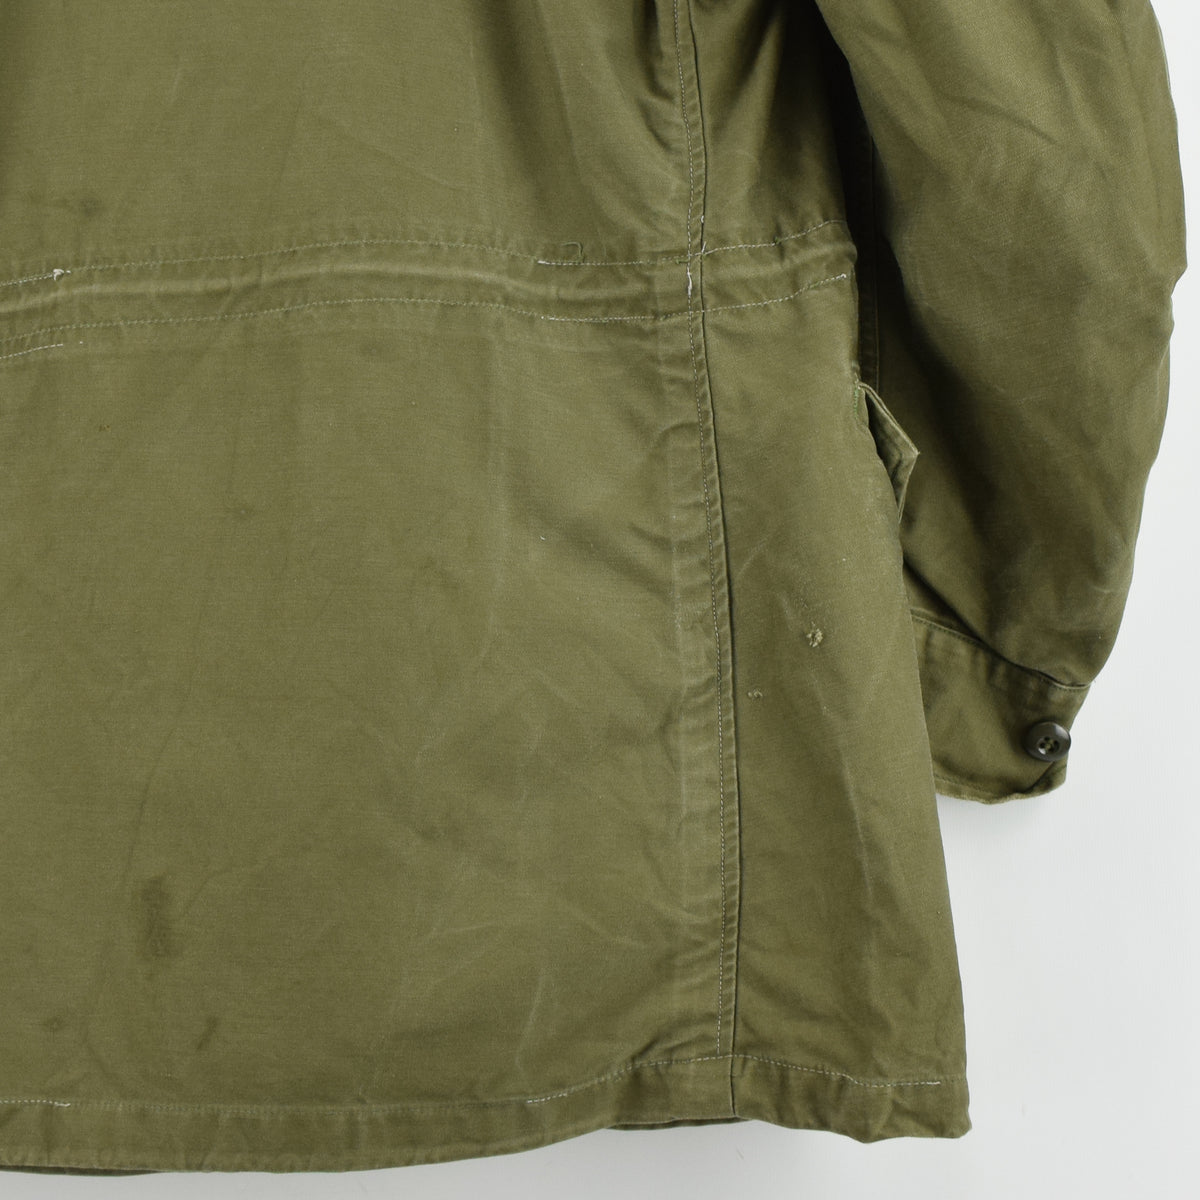 Vintage 50s M-1951 Korean War US Army Field Jacket Olive Green Conmar Zip M back hem